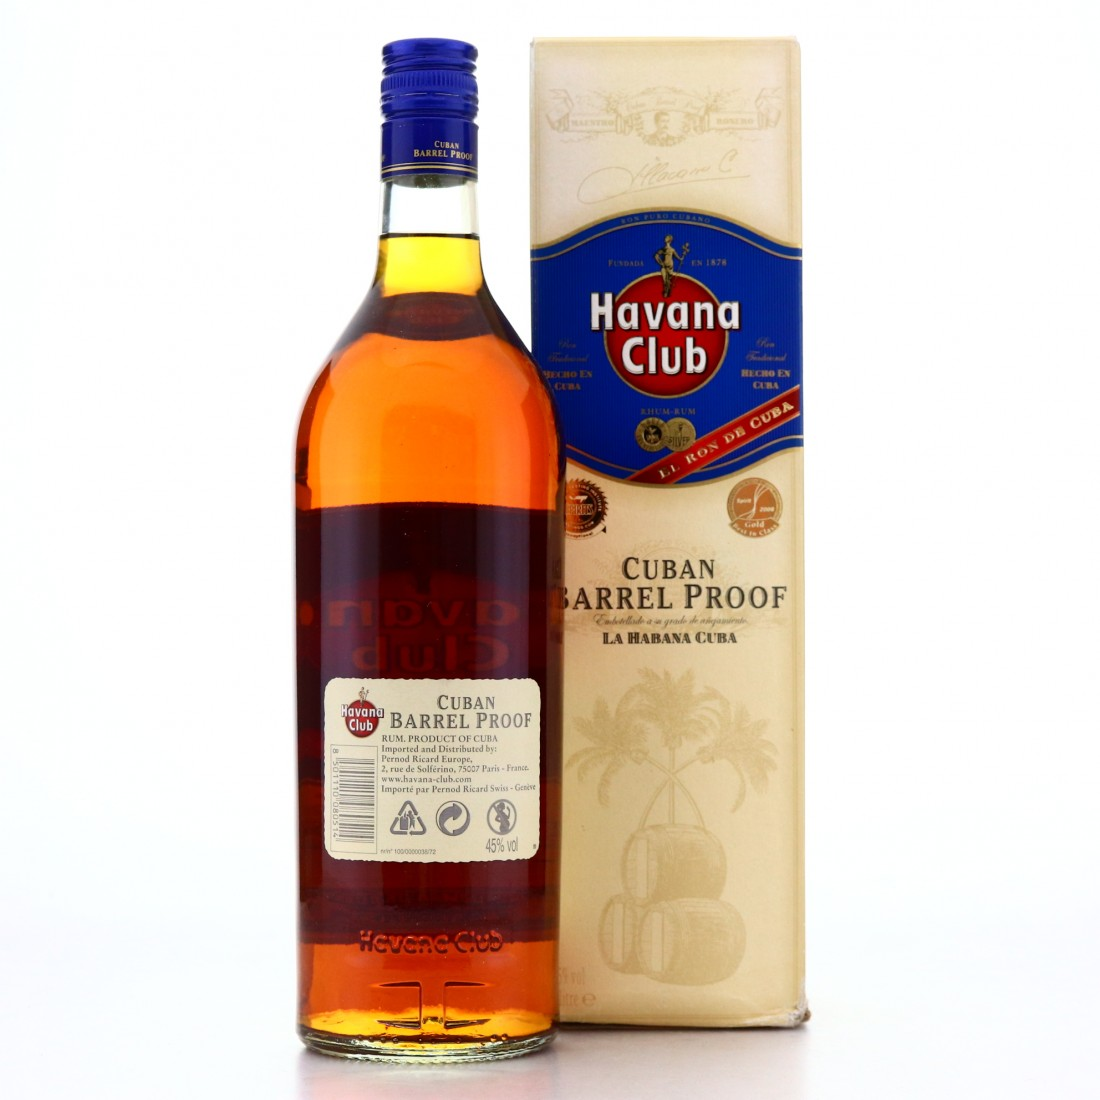 Havana Club Cuban Barrel Proof 1 Litre